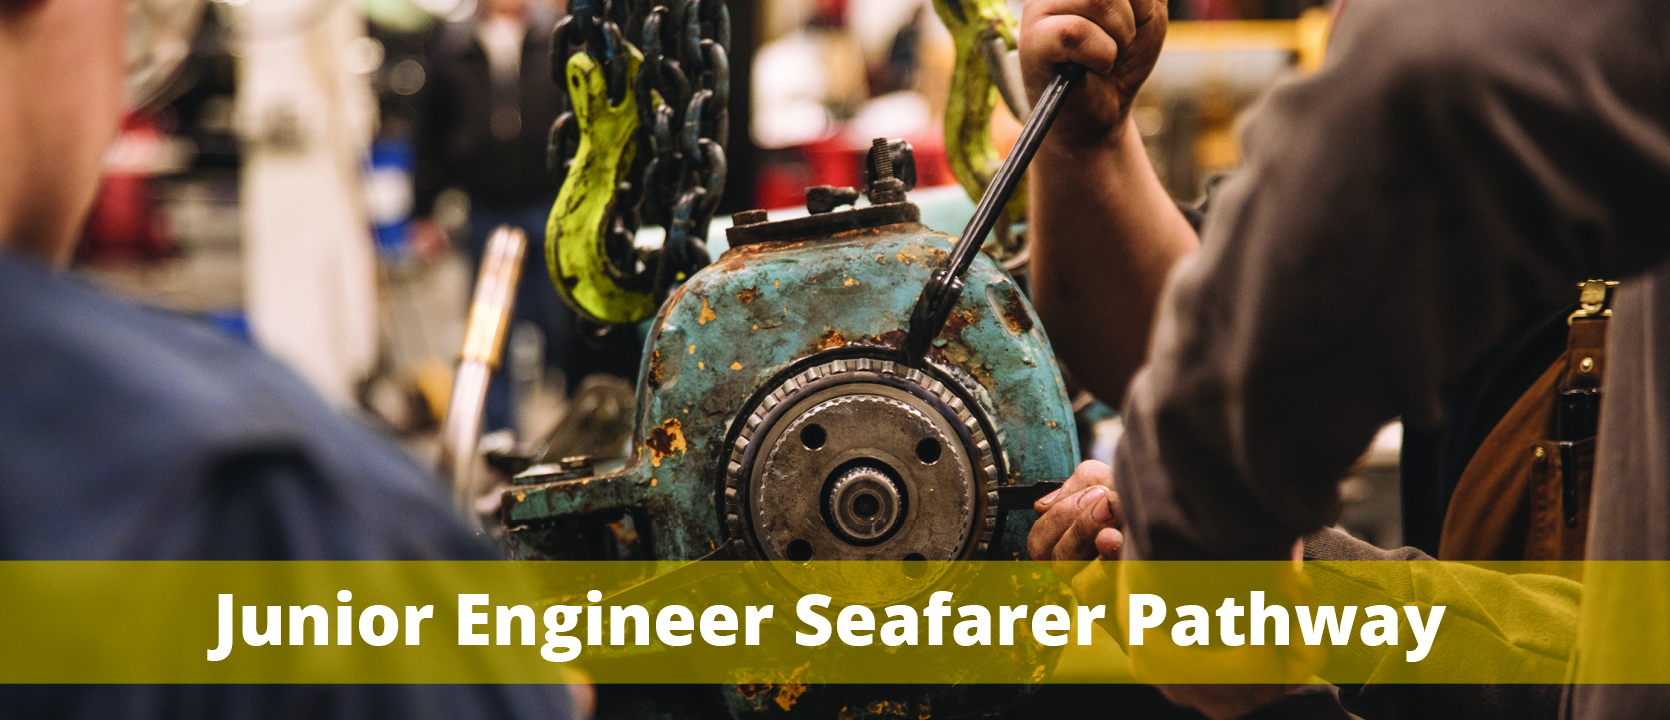 Junior Engineer Seafarer Pathway